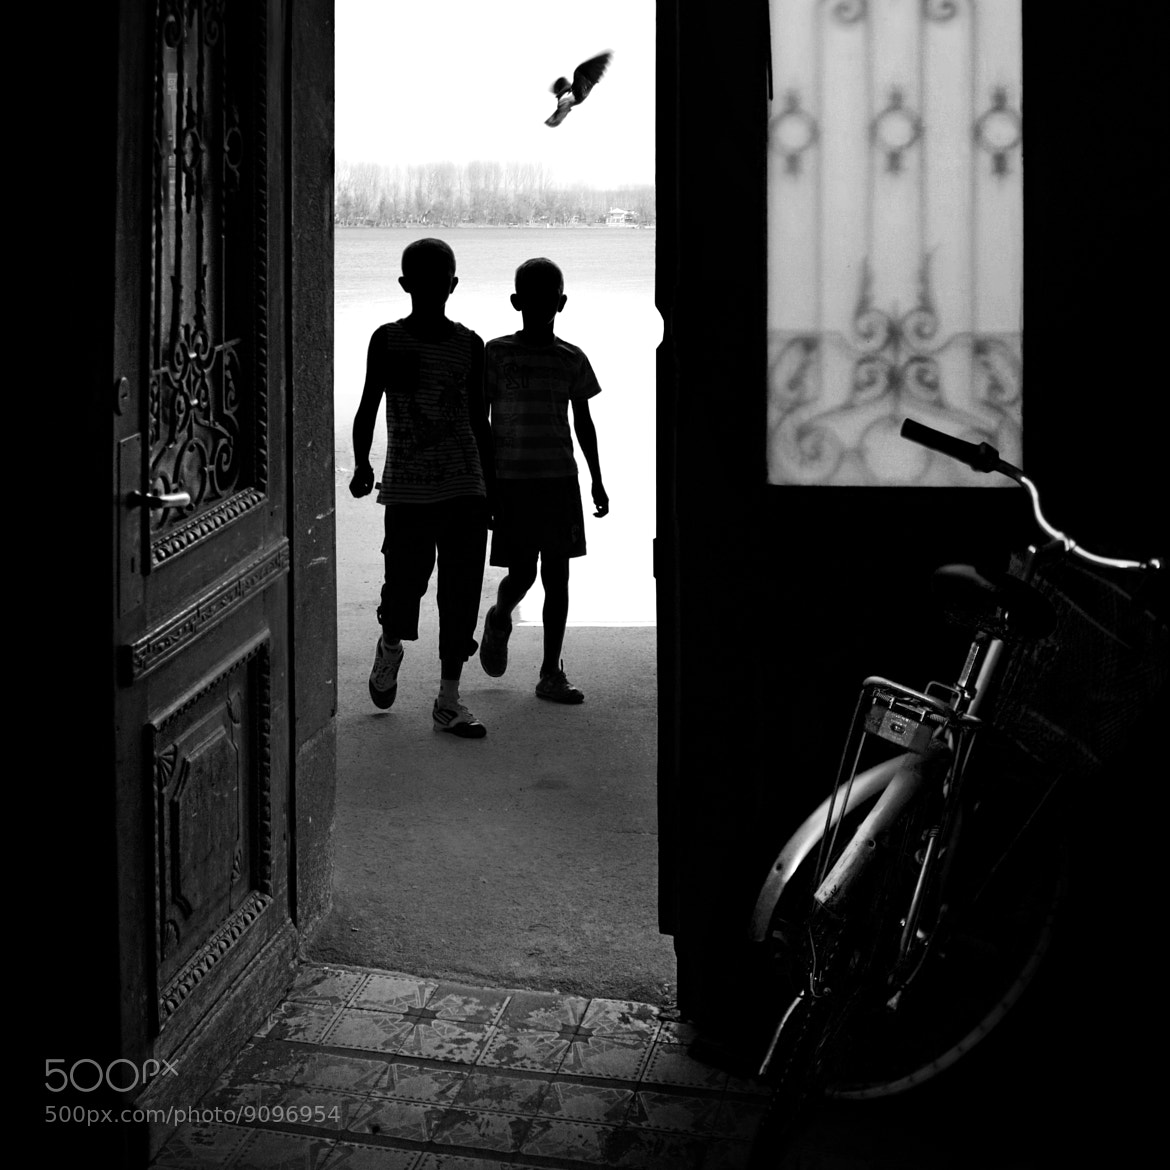 Photograph Bicycle thieves by Dragan Todorović on 500px